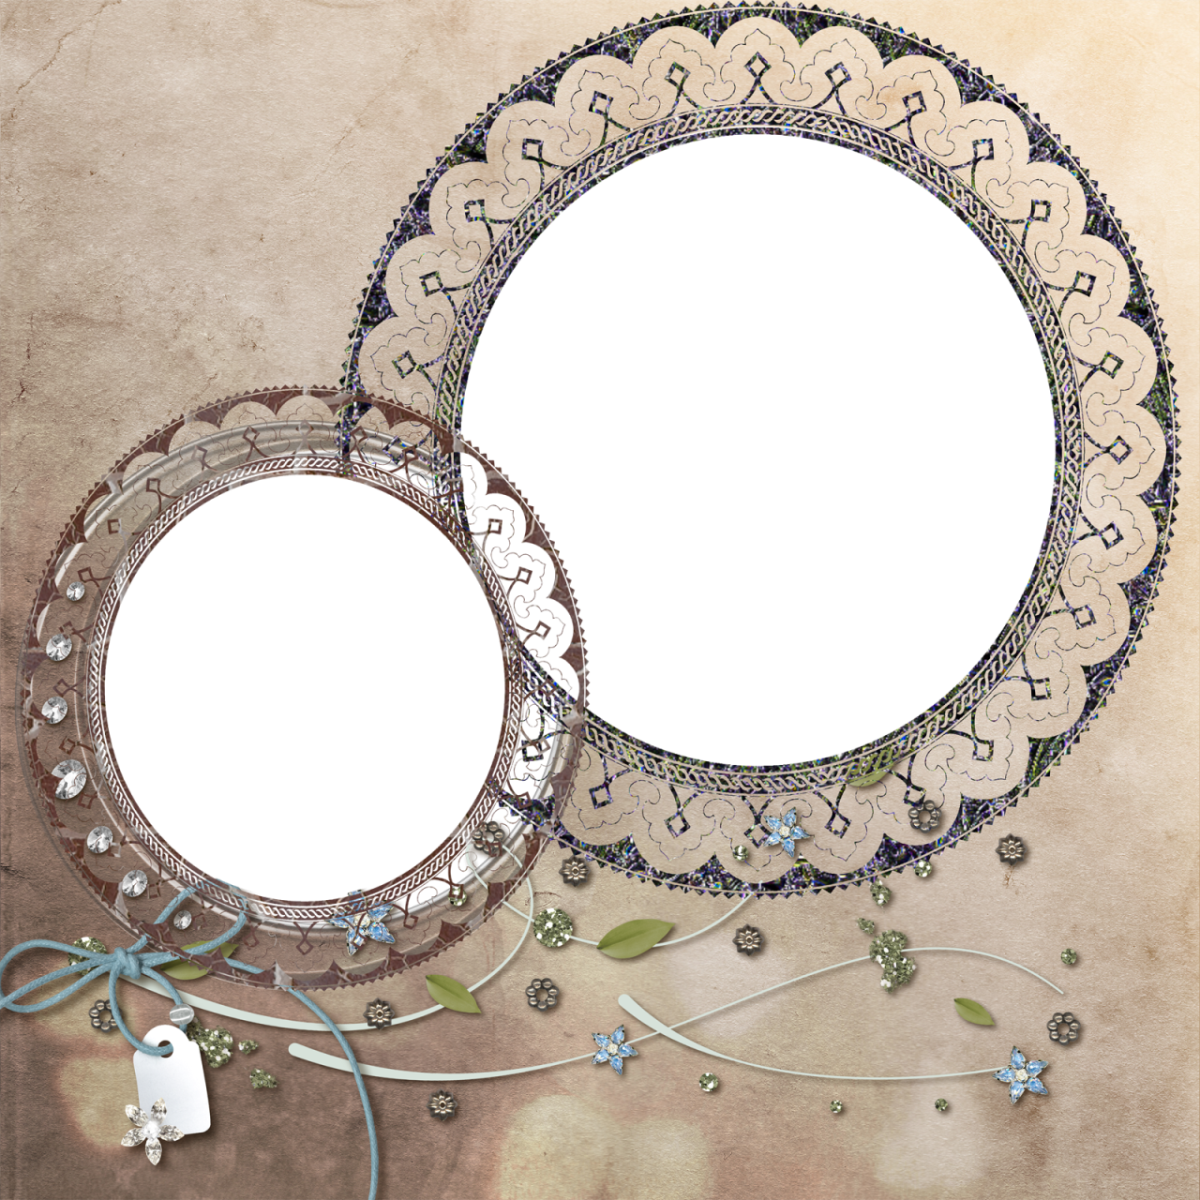 Old paper double oval picture frame png trans back rmeky a old paper double oval picture frame png trans back jeuxipadfo Image collections